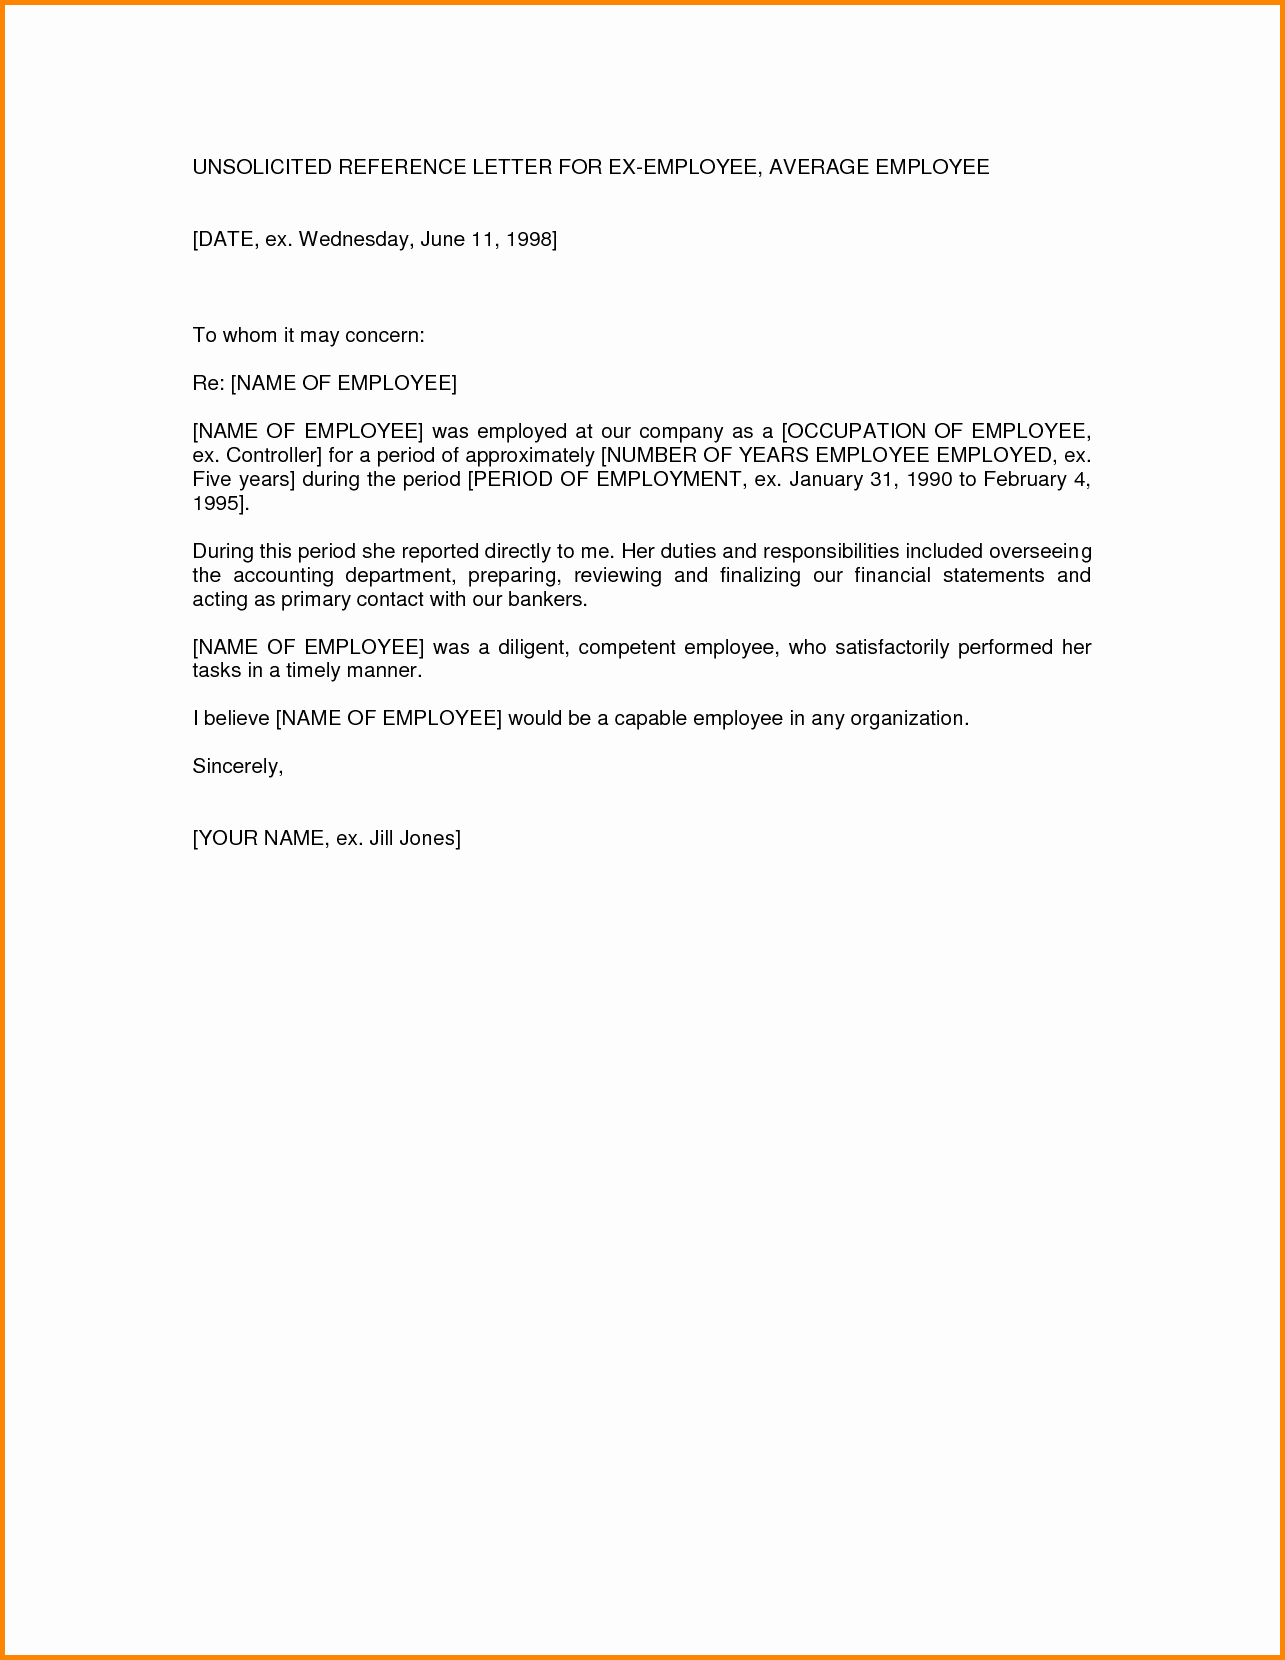 Letters Of Reference for Employees Elegant Reference Letter Template for Employee Bamboodownunder